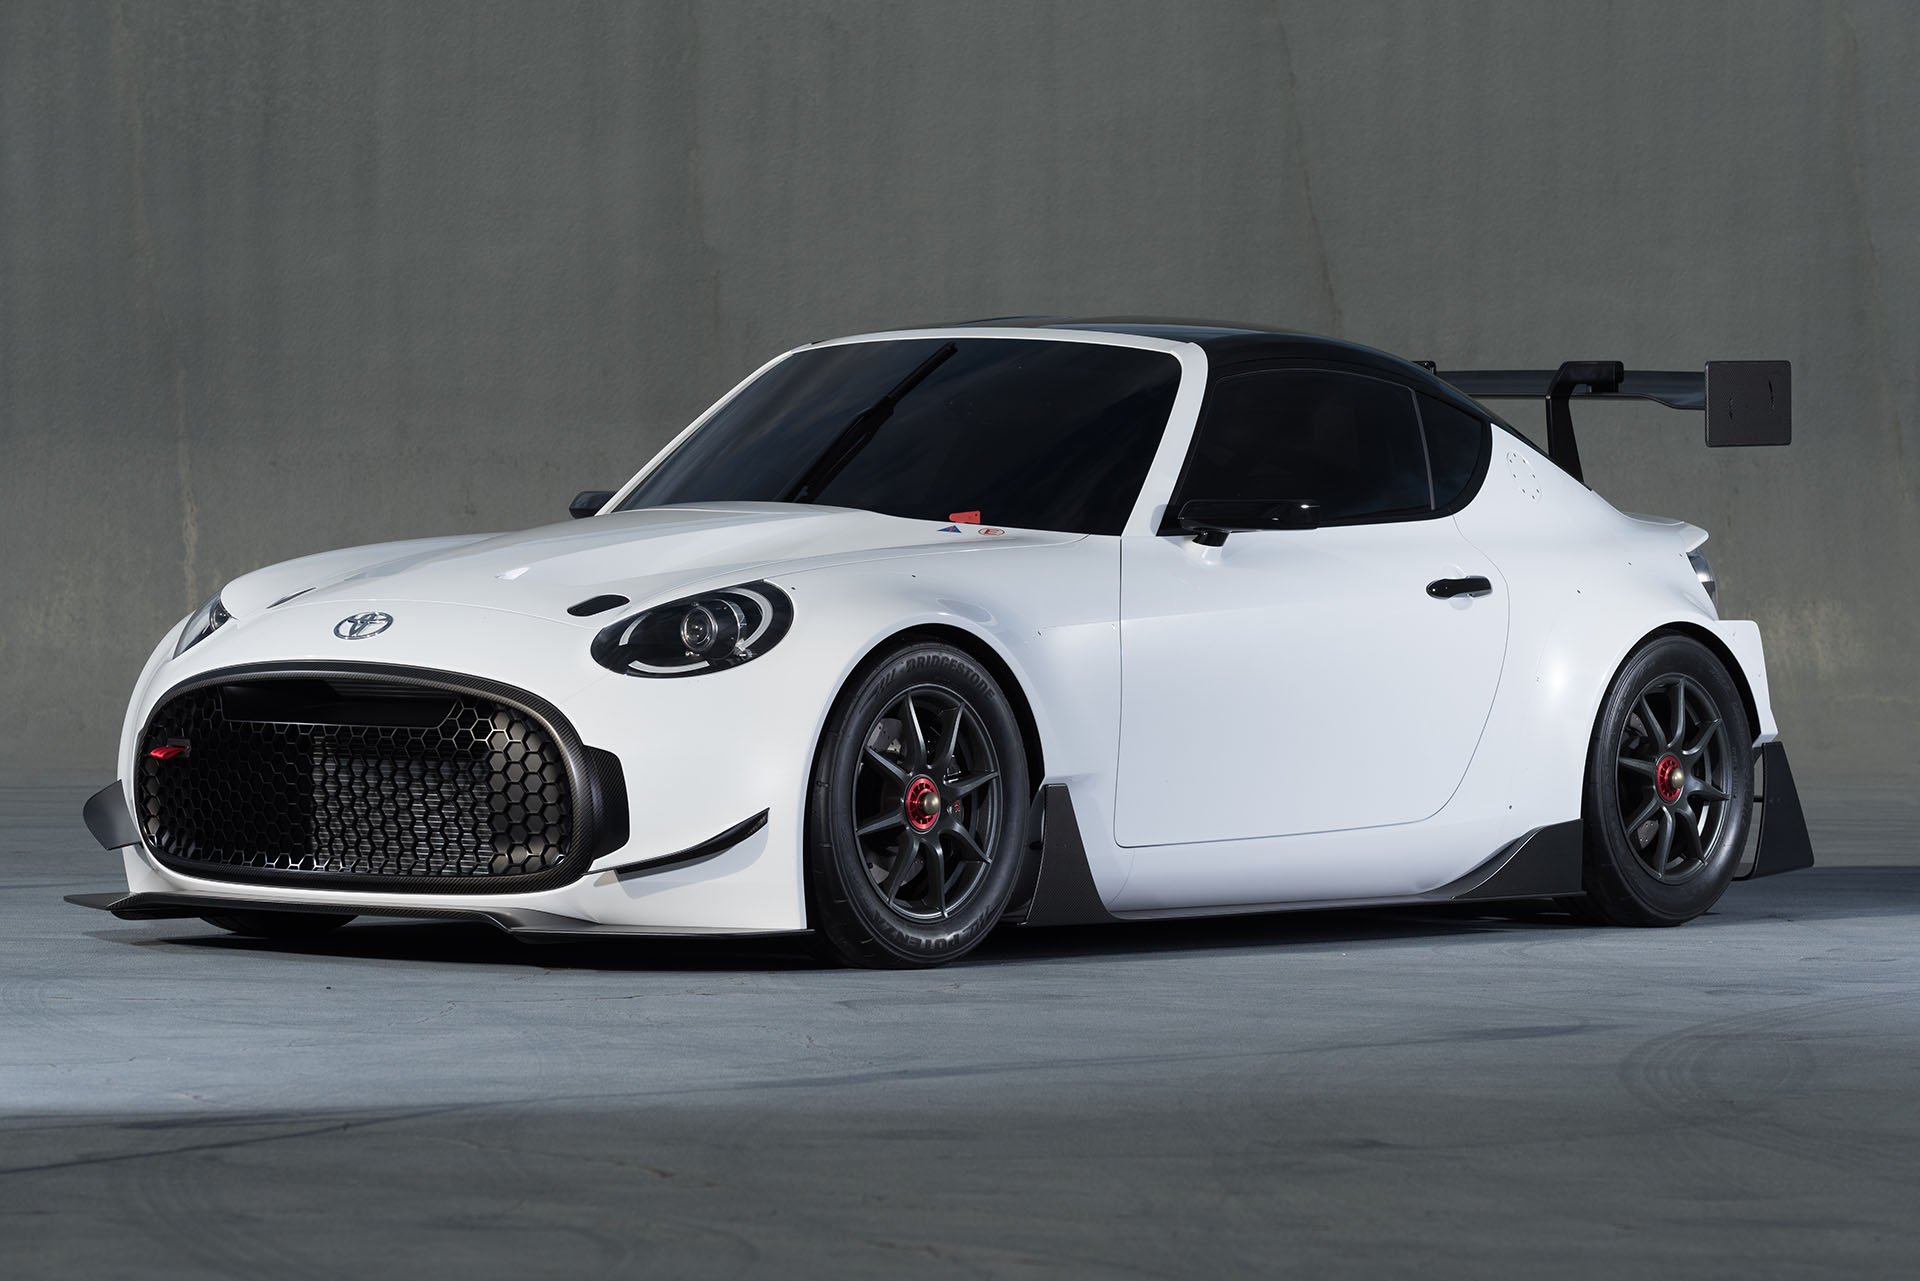 Toyota S Fr Concept Goes From Cute Sports Car To Angry Race Car